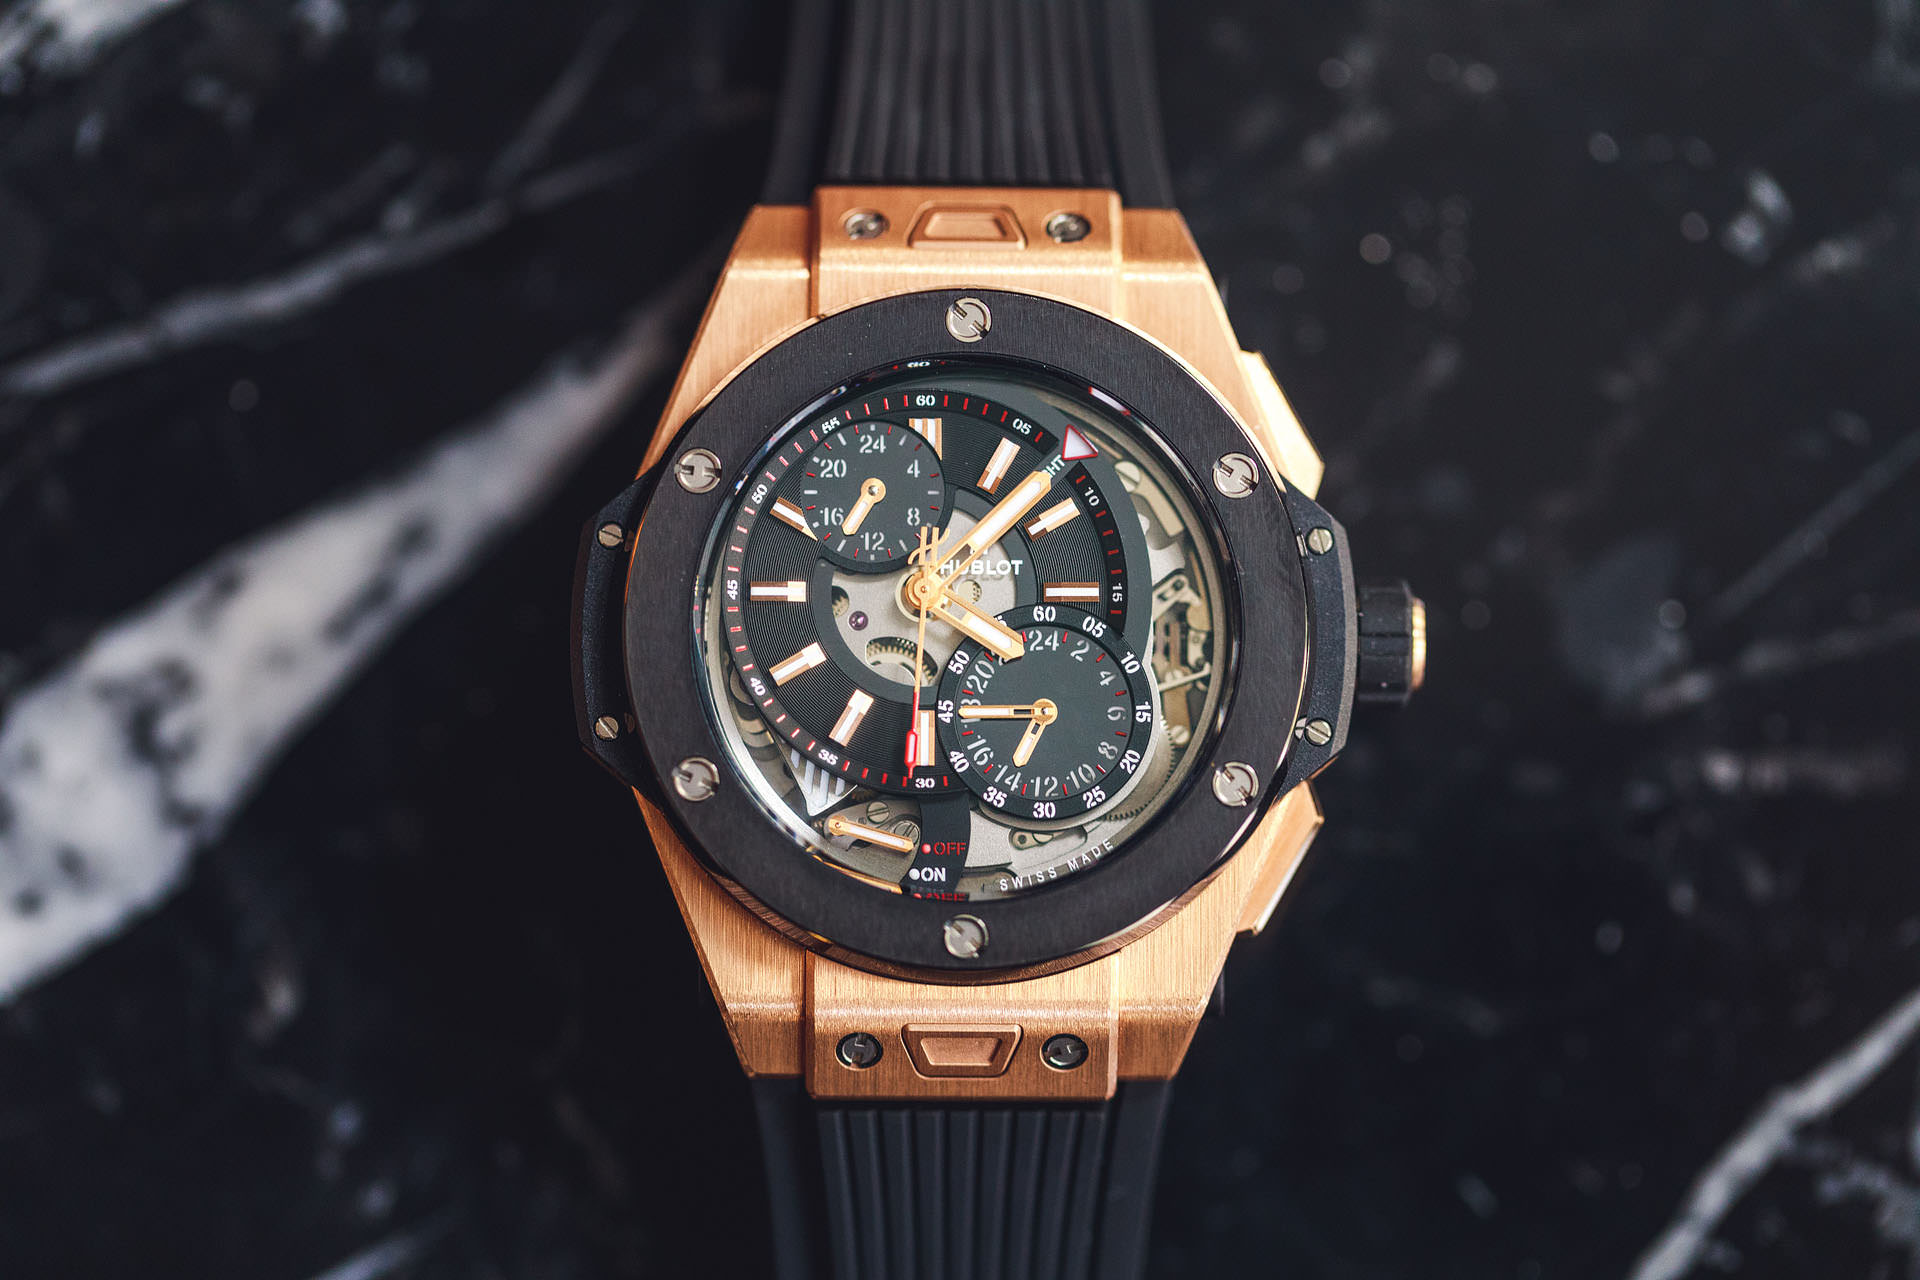 6803 luxury watch lifestyle photography